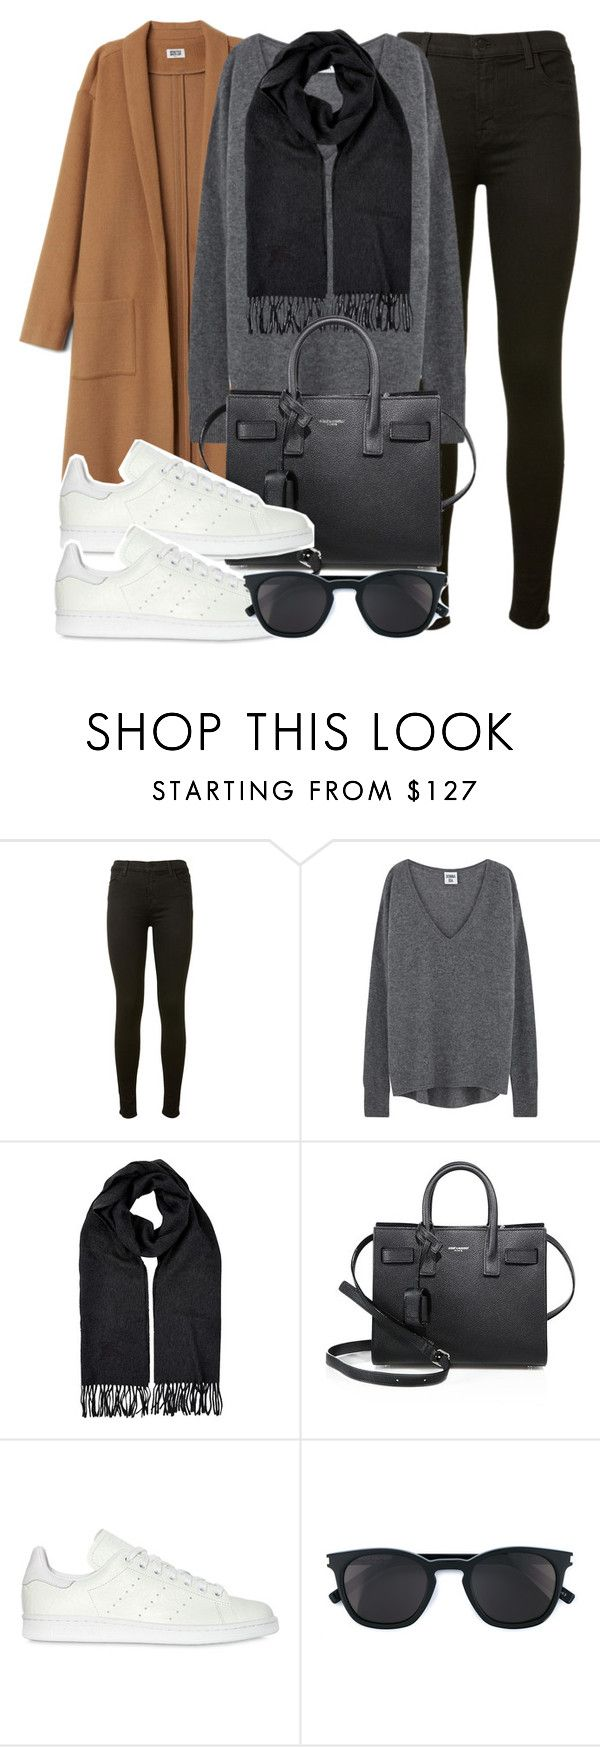 """""""Untitled #11984"""" by vany-alvarado ❤ liked on Polyvore featuring J Brand, Burberry, Yves Saint Laurent and adidas Originals"""